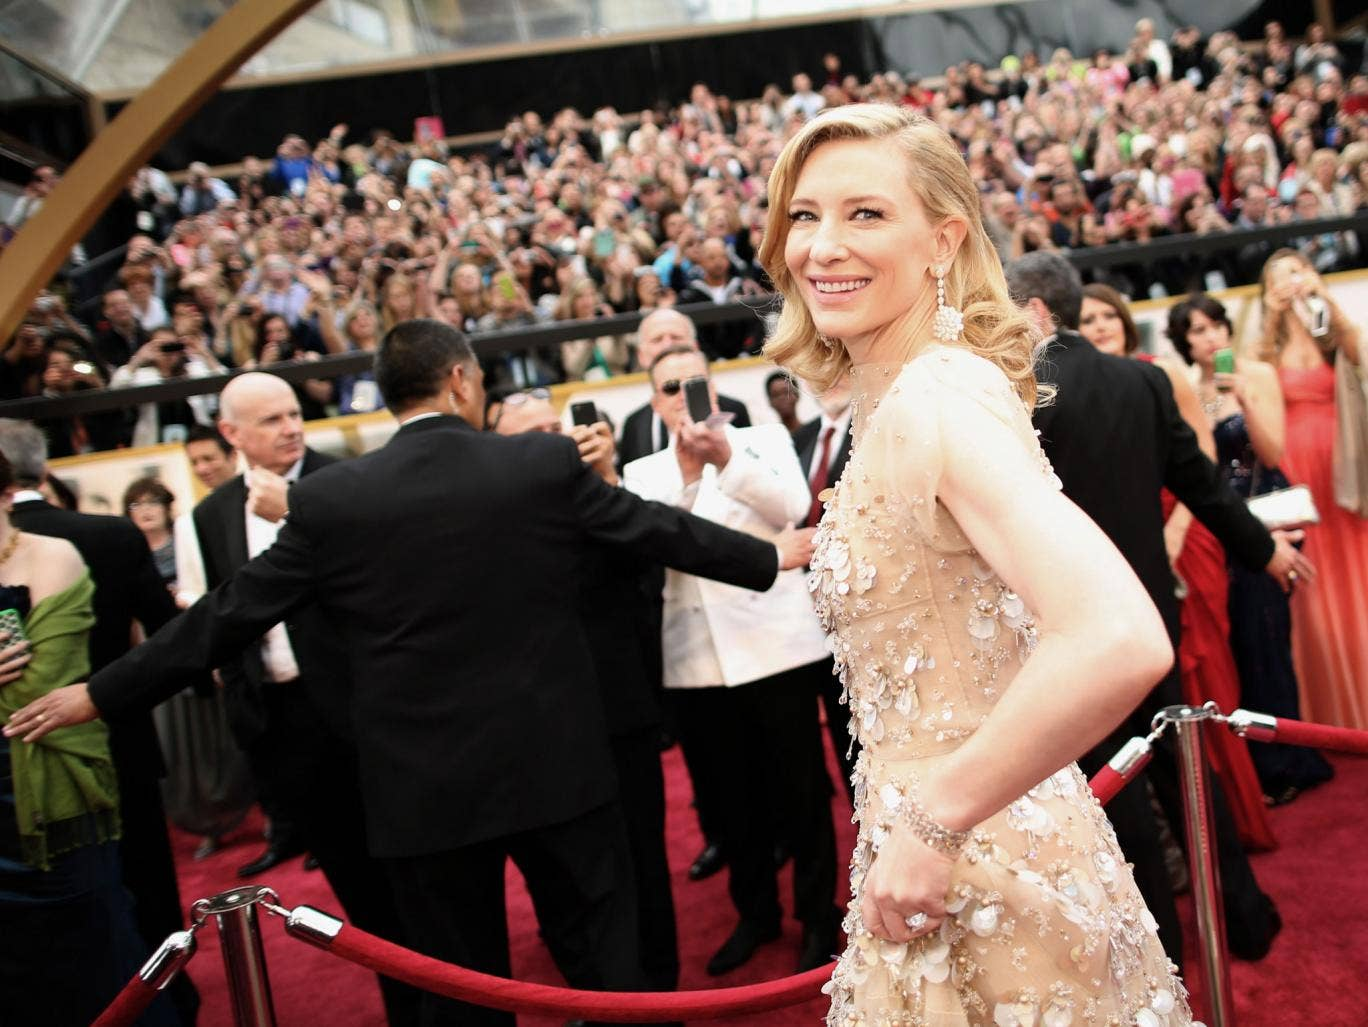 Cate Blanchett won Best Actress at the 86th Academy Awards